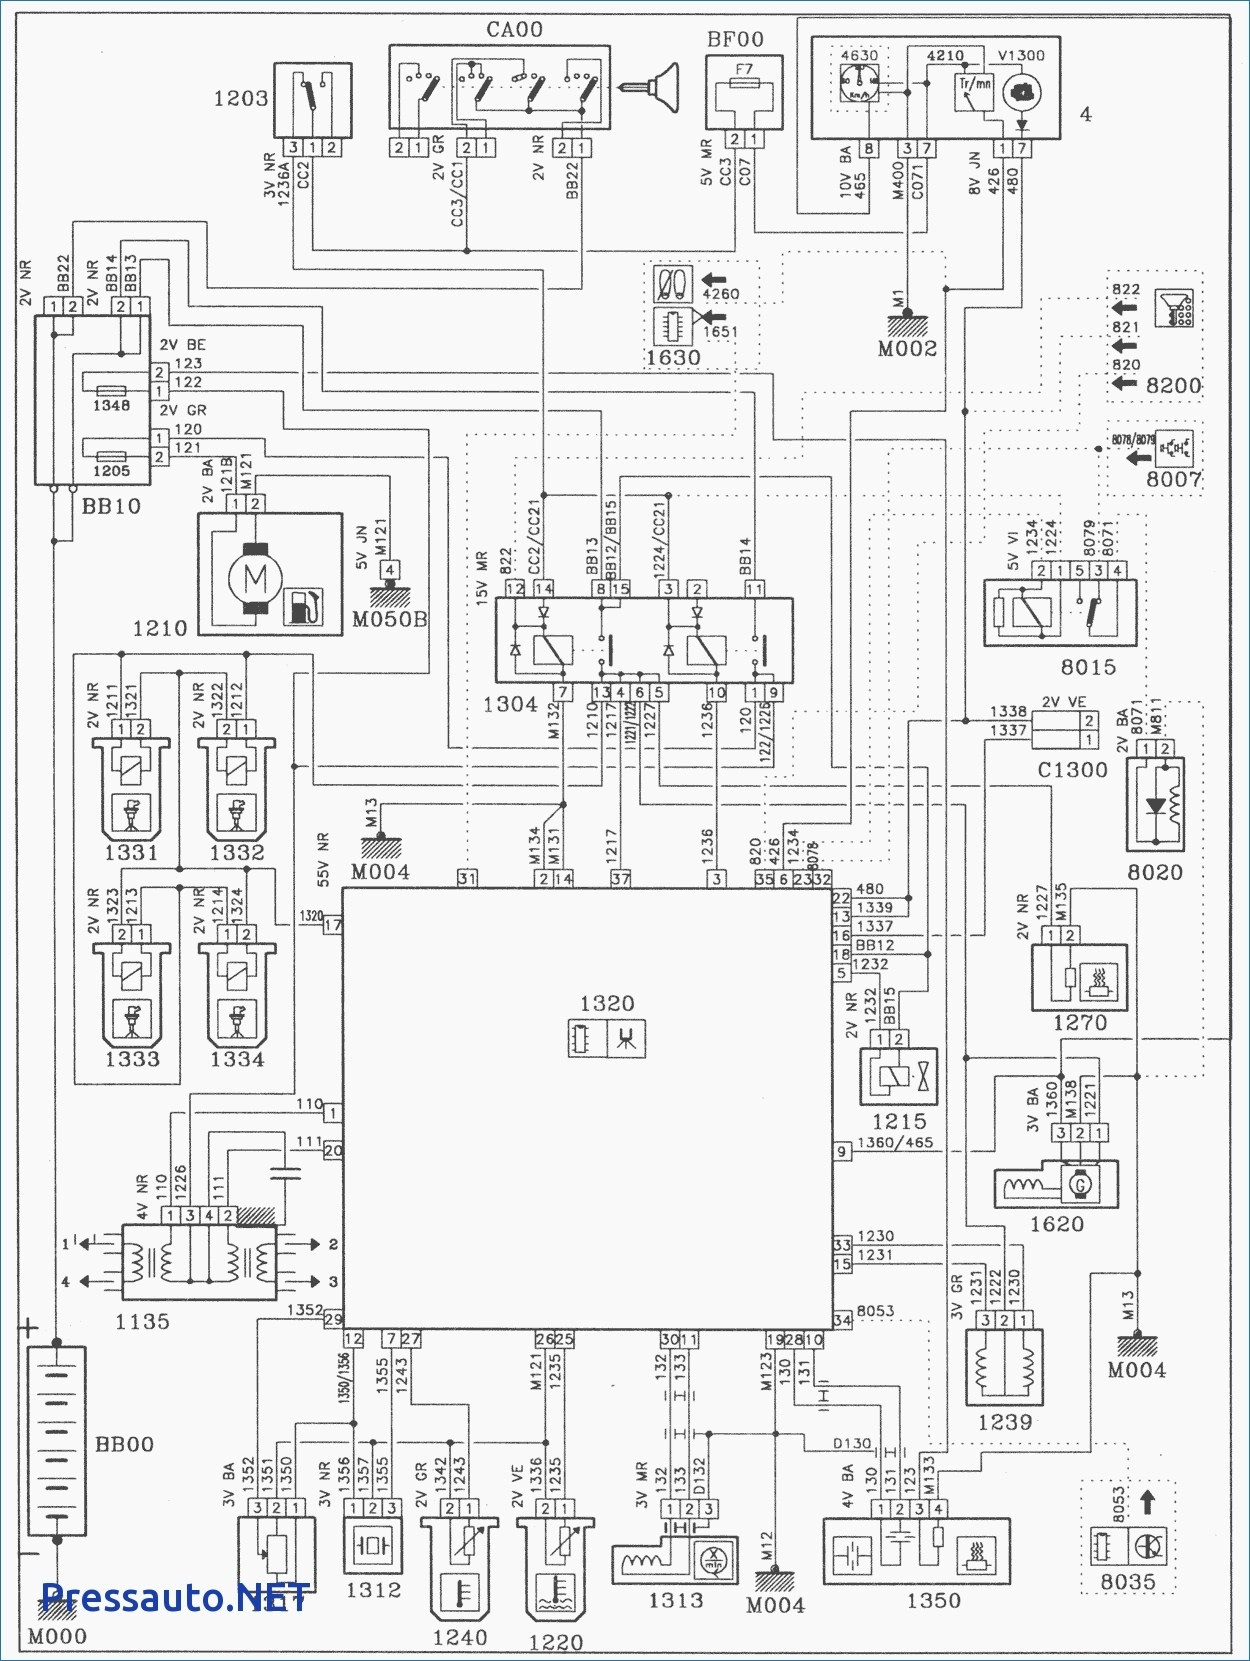 Condor Pressure Switch    Wiring       Diagram         Wiring       Diagram